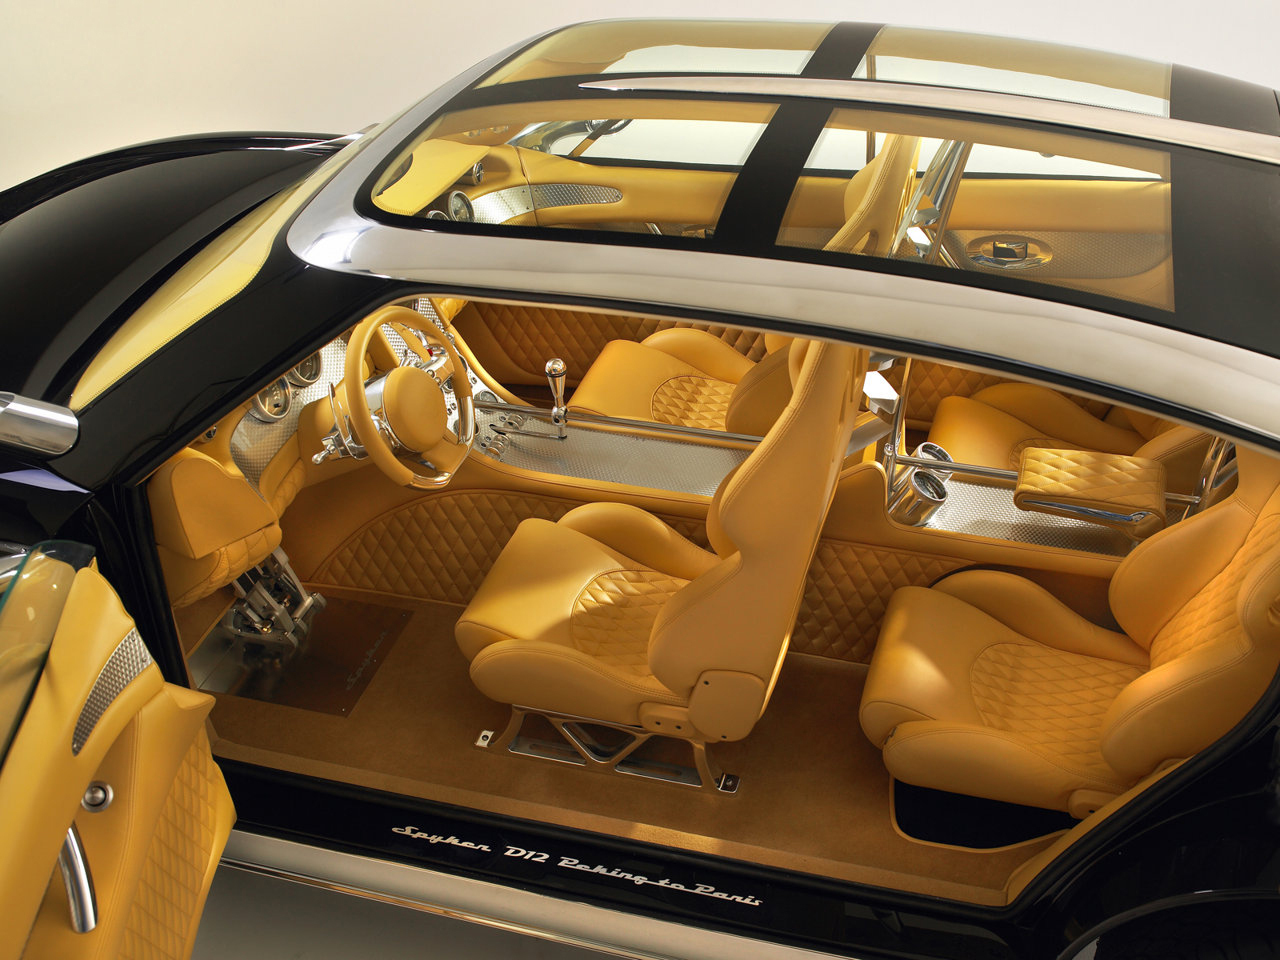 Prototype-stoelframe-SPYKER-peking-to-paris-2